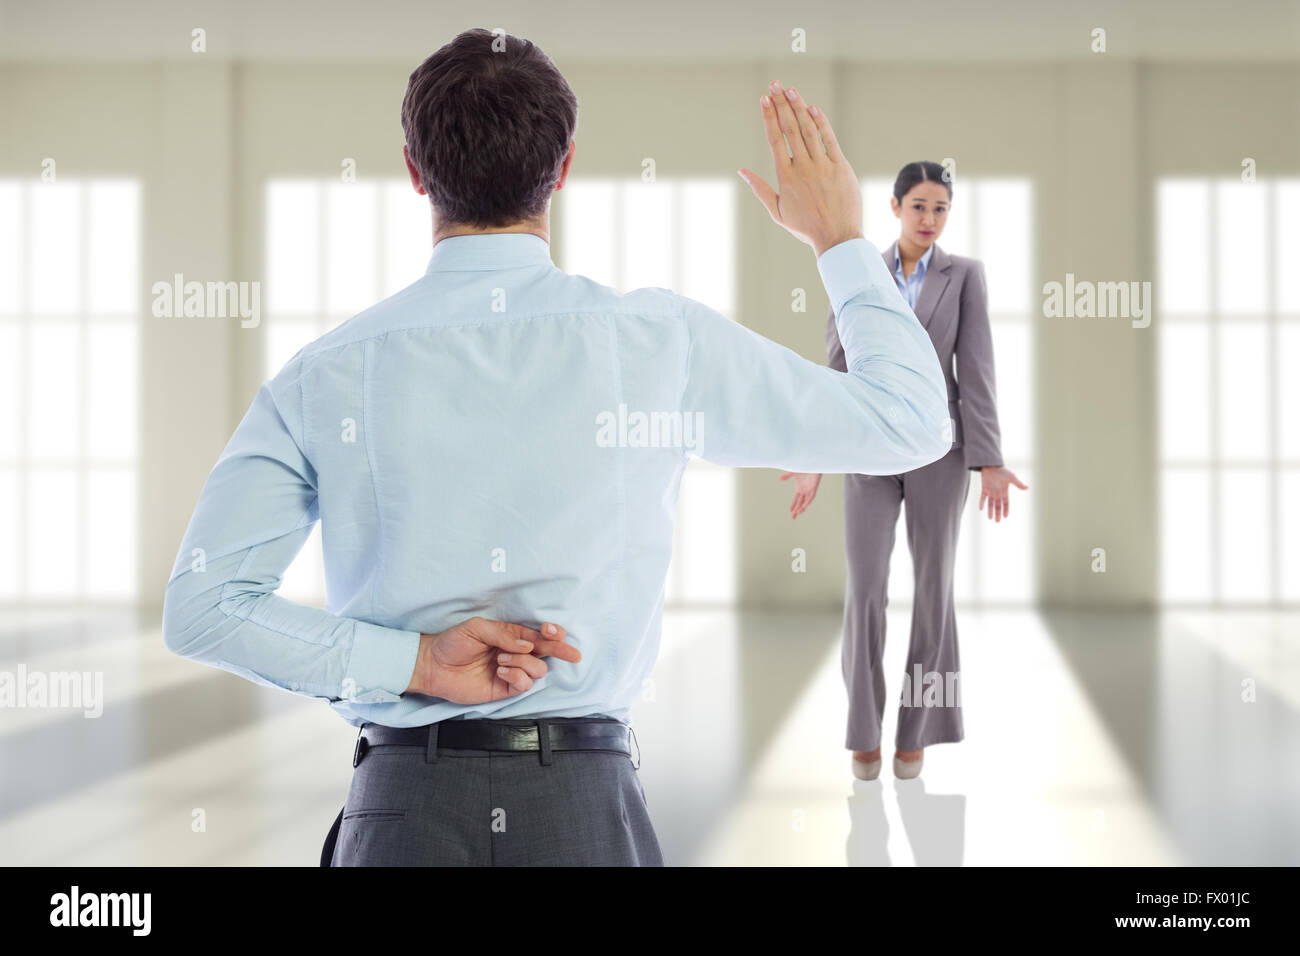 Composite image of businessman crossing fingers behind his back - Stock Image